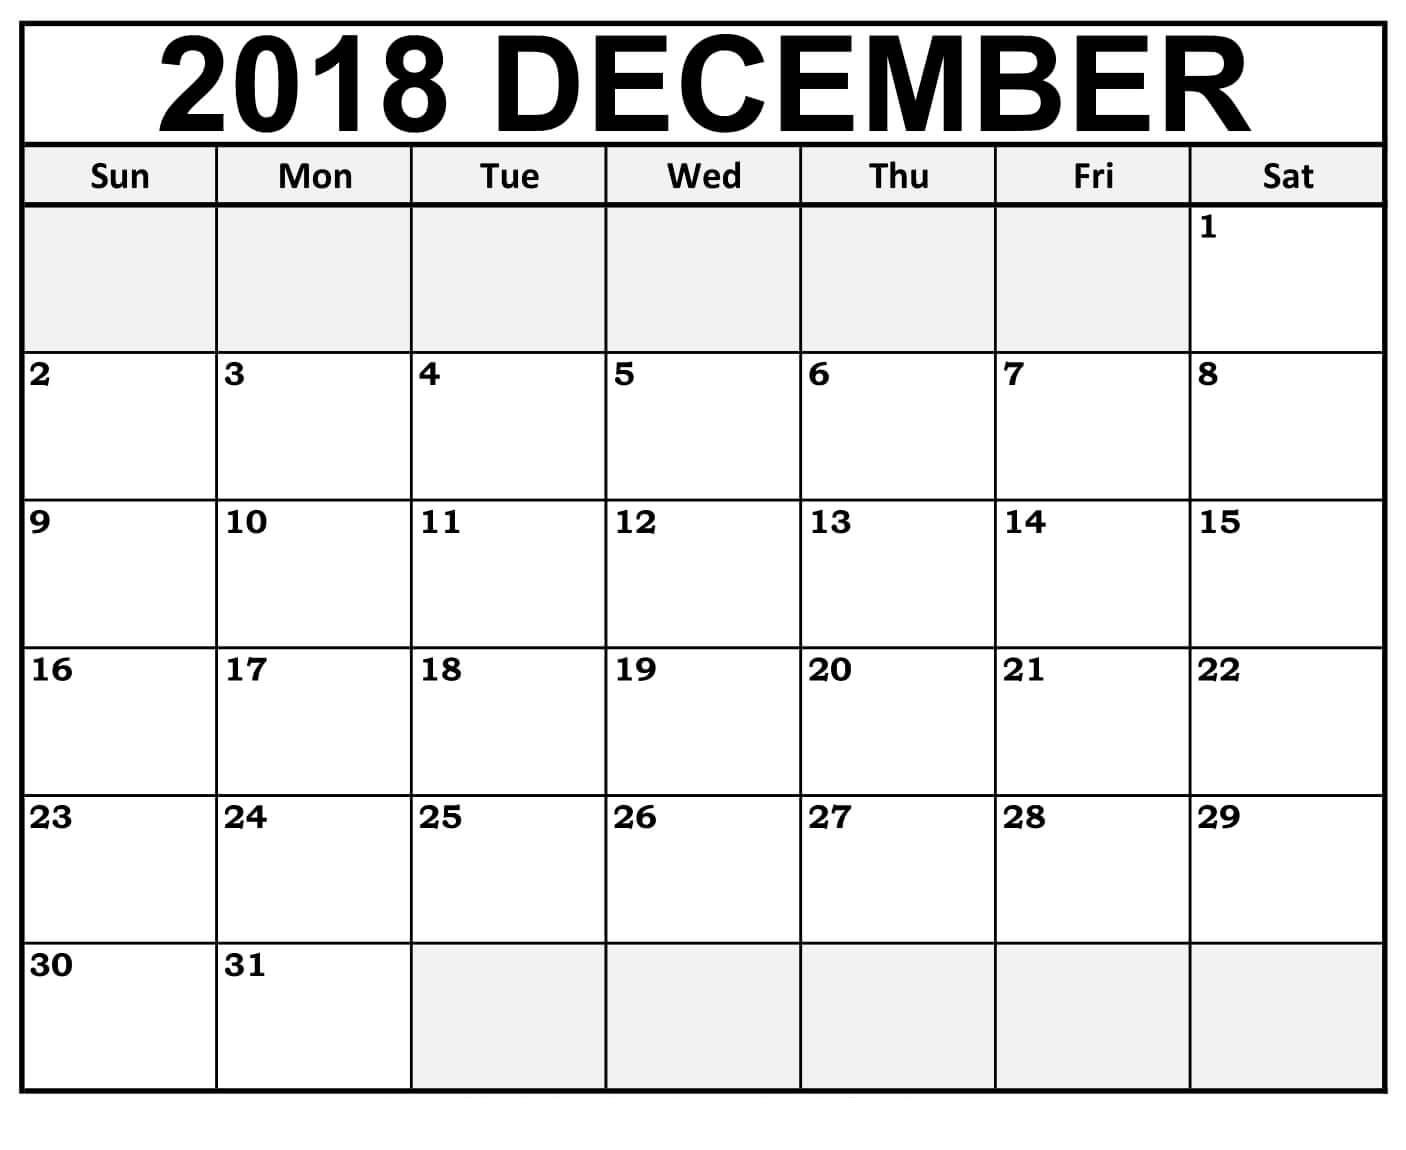 December Calendar 2018 PDF Free Download Template